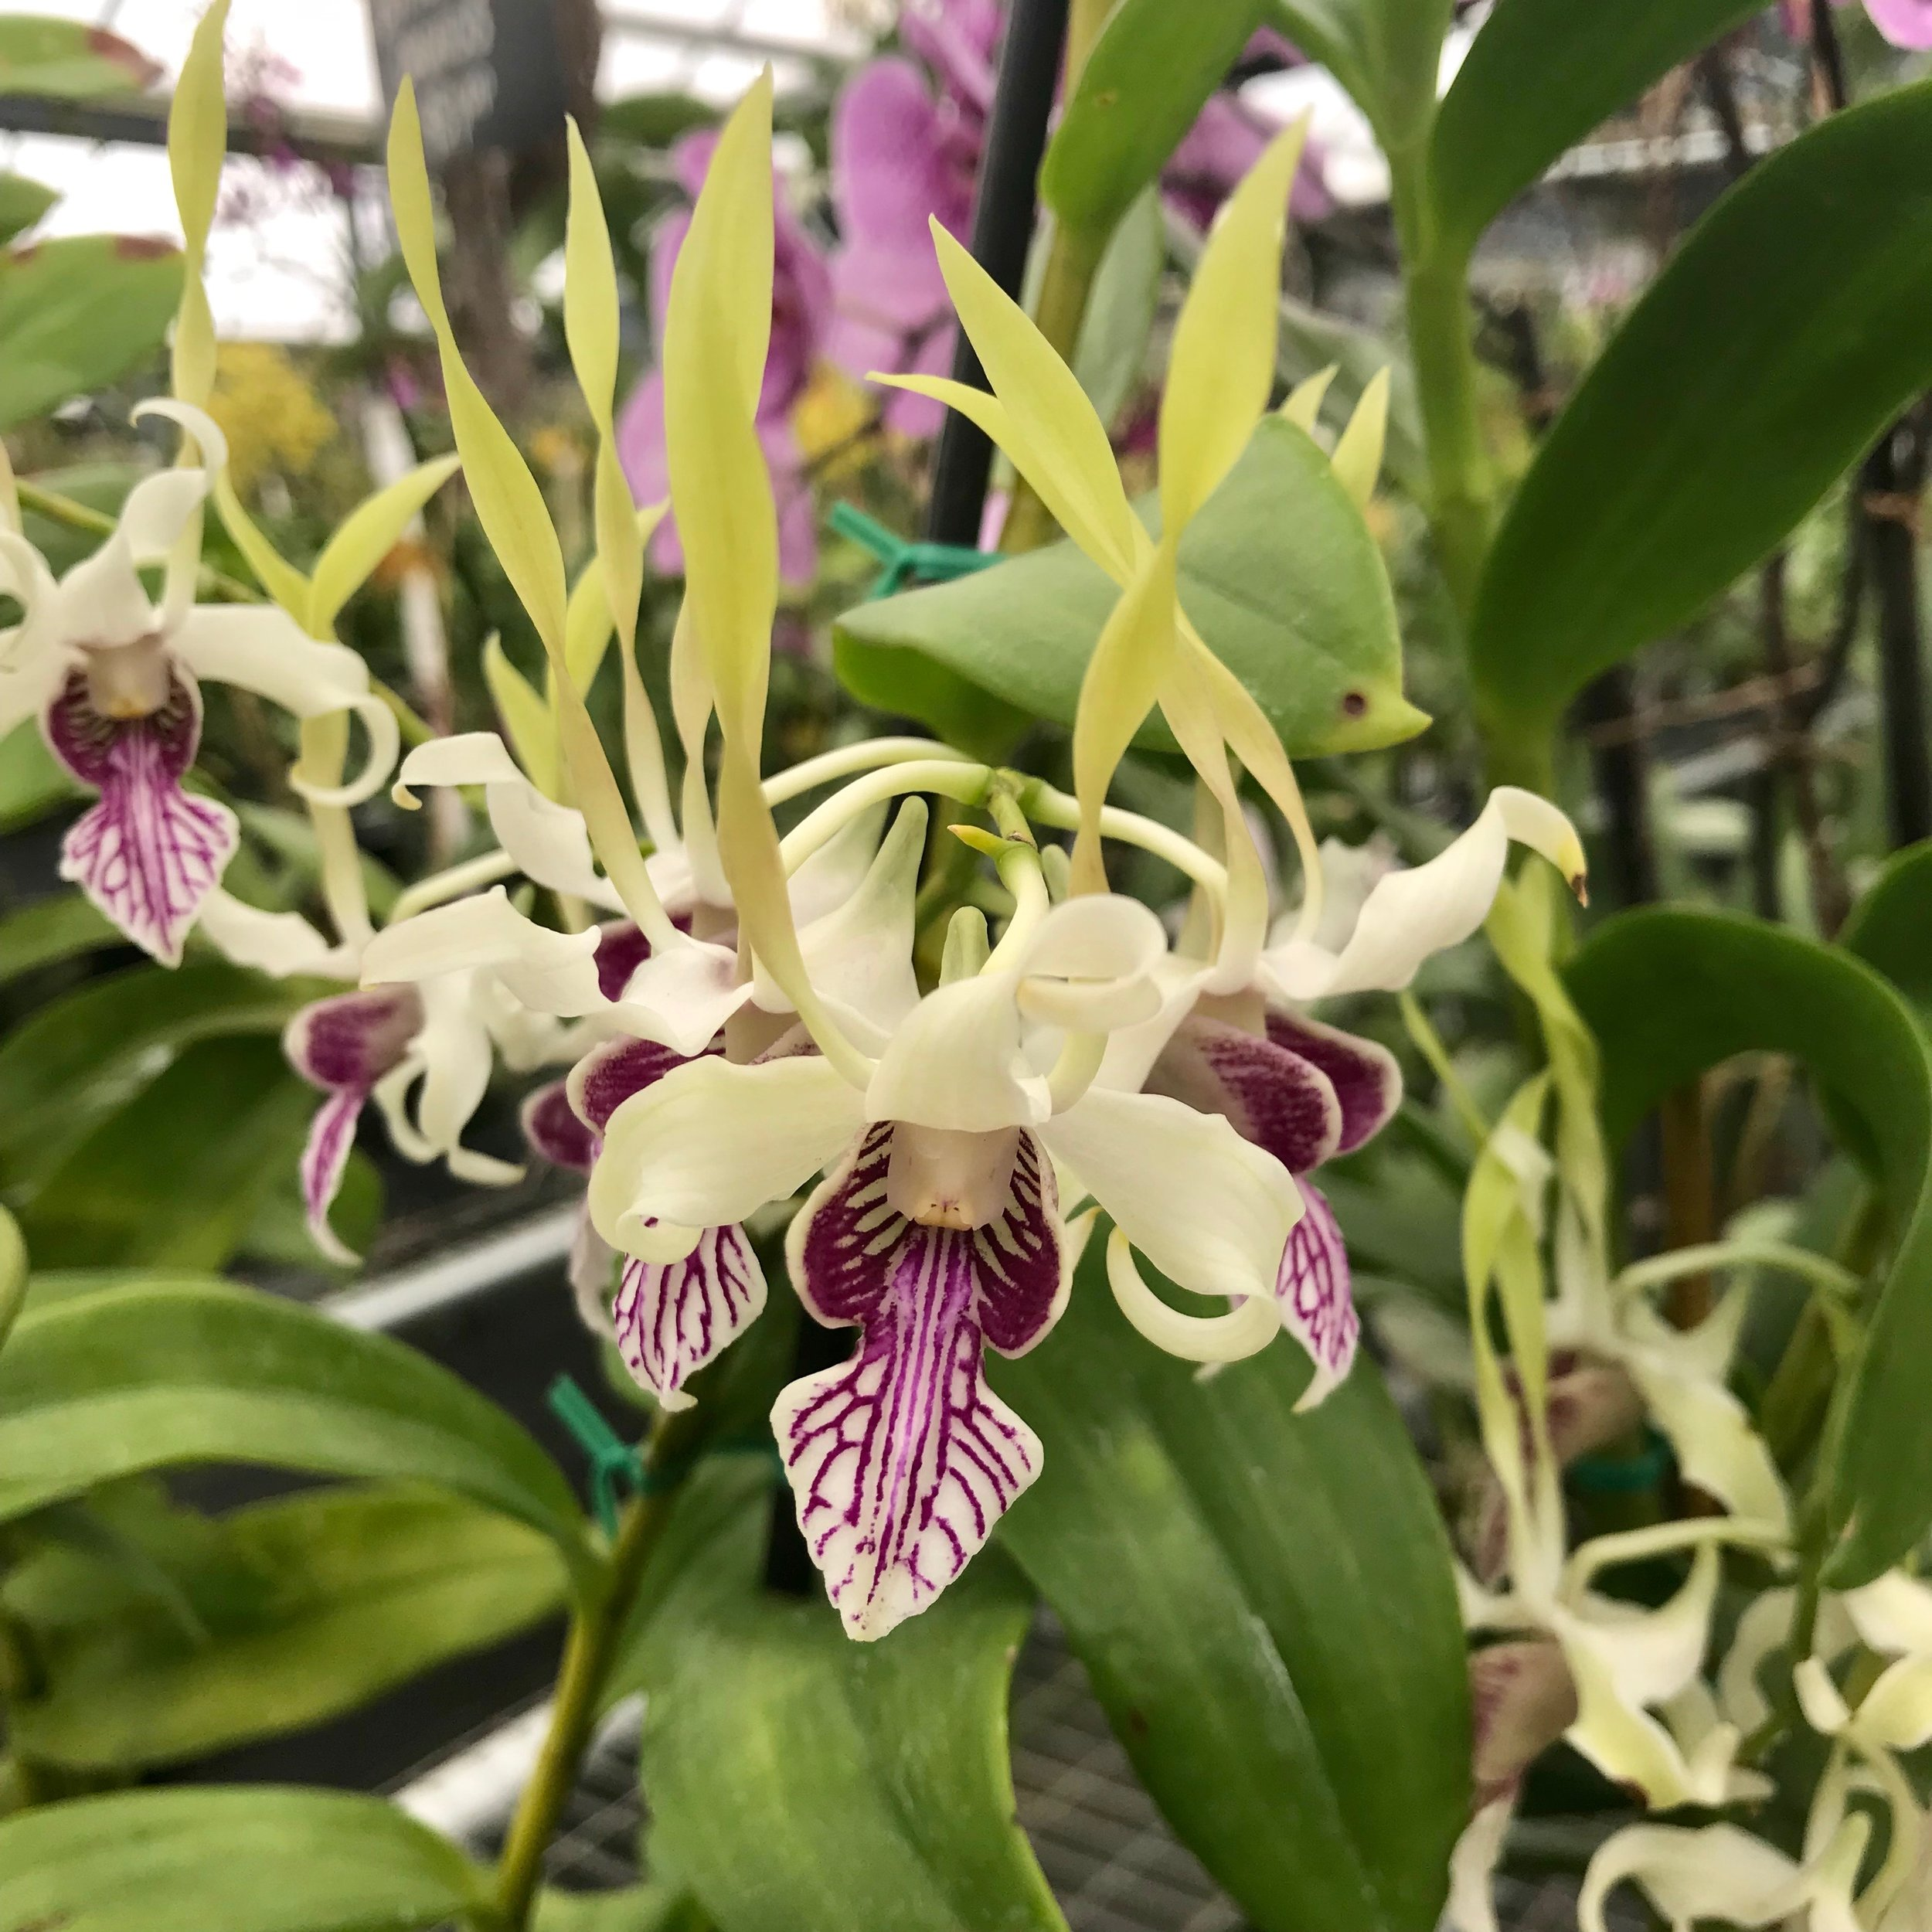 Dendrobium stratiotes orchid species Palmer Orchids